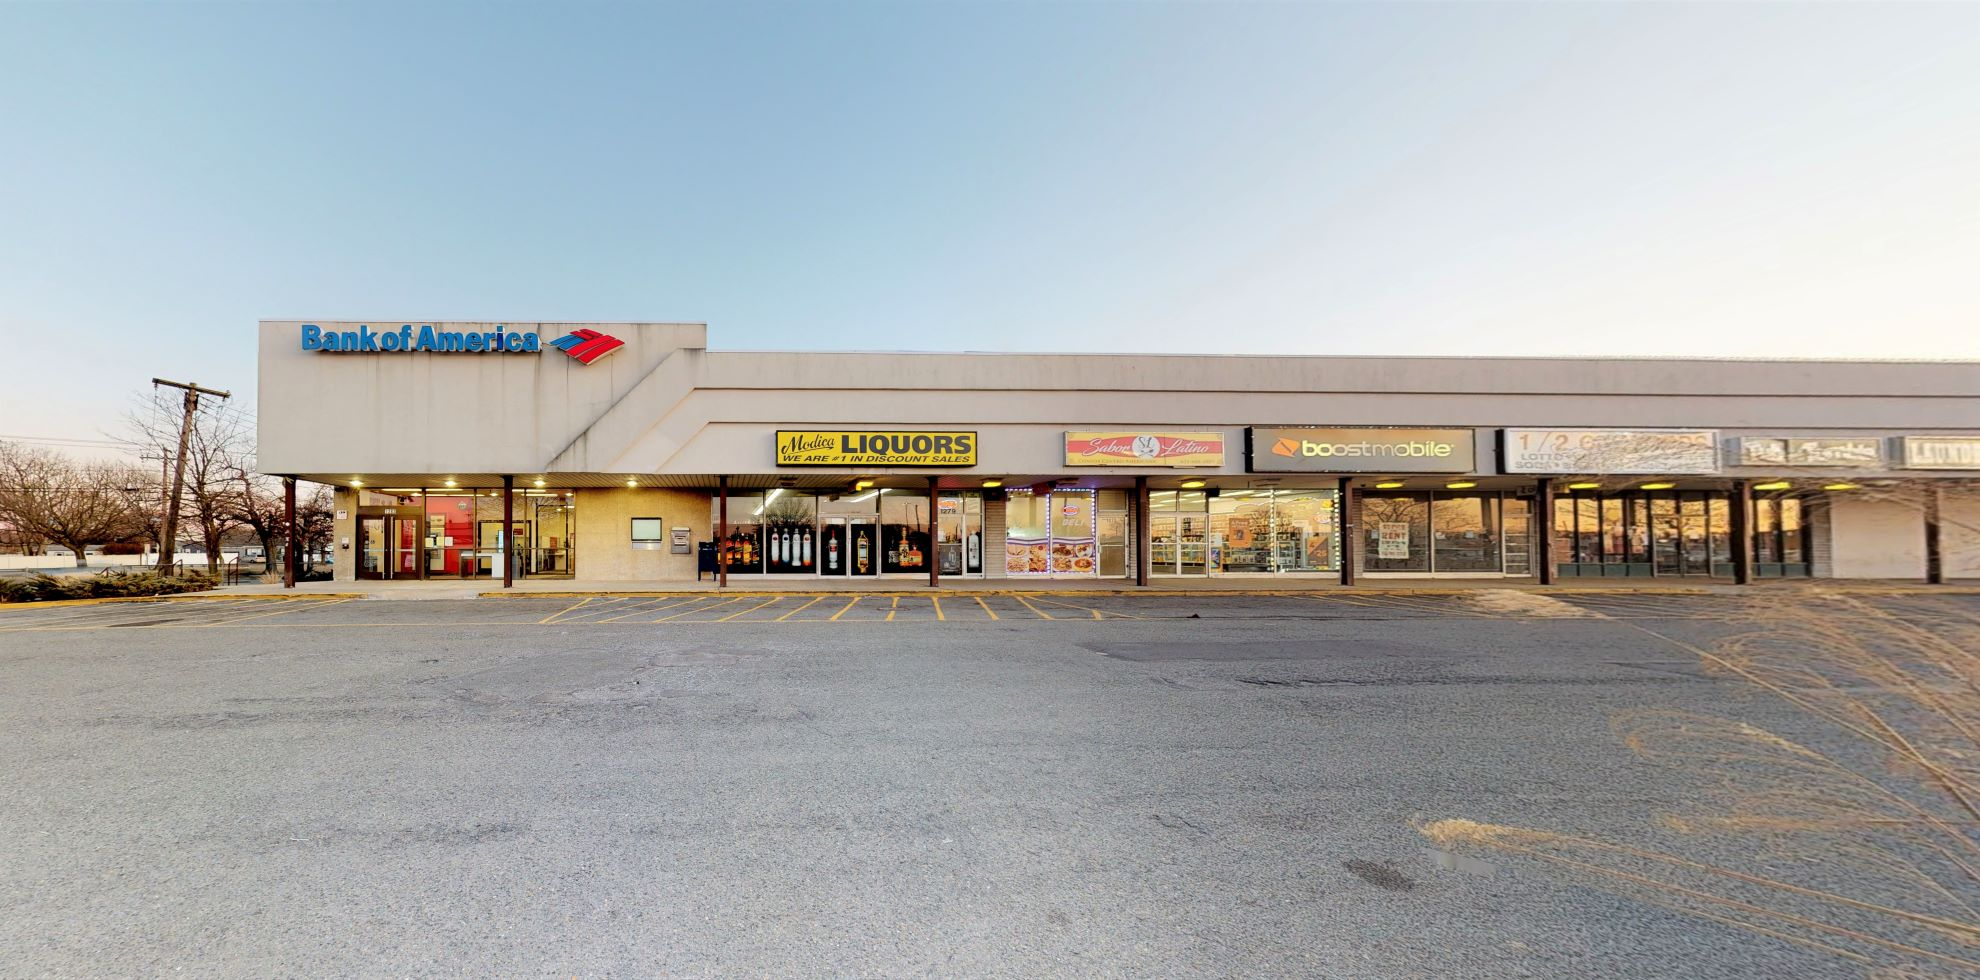 Bank of America financial center with walk-up ATM | 1283 Sunrise Hwy, Copiague, NY 11726